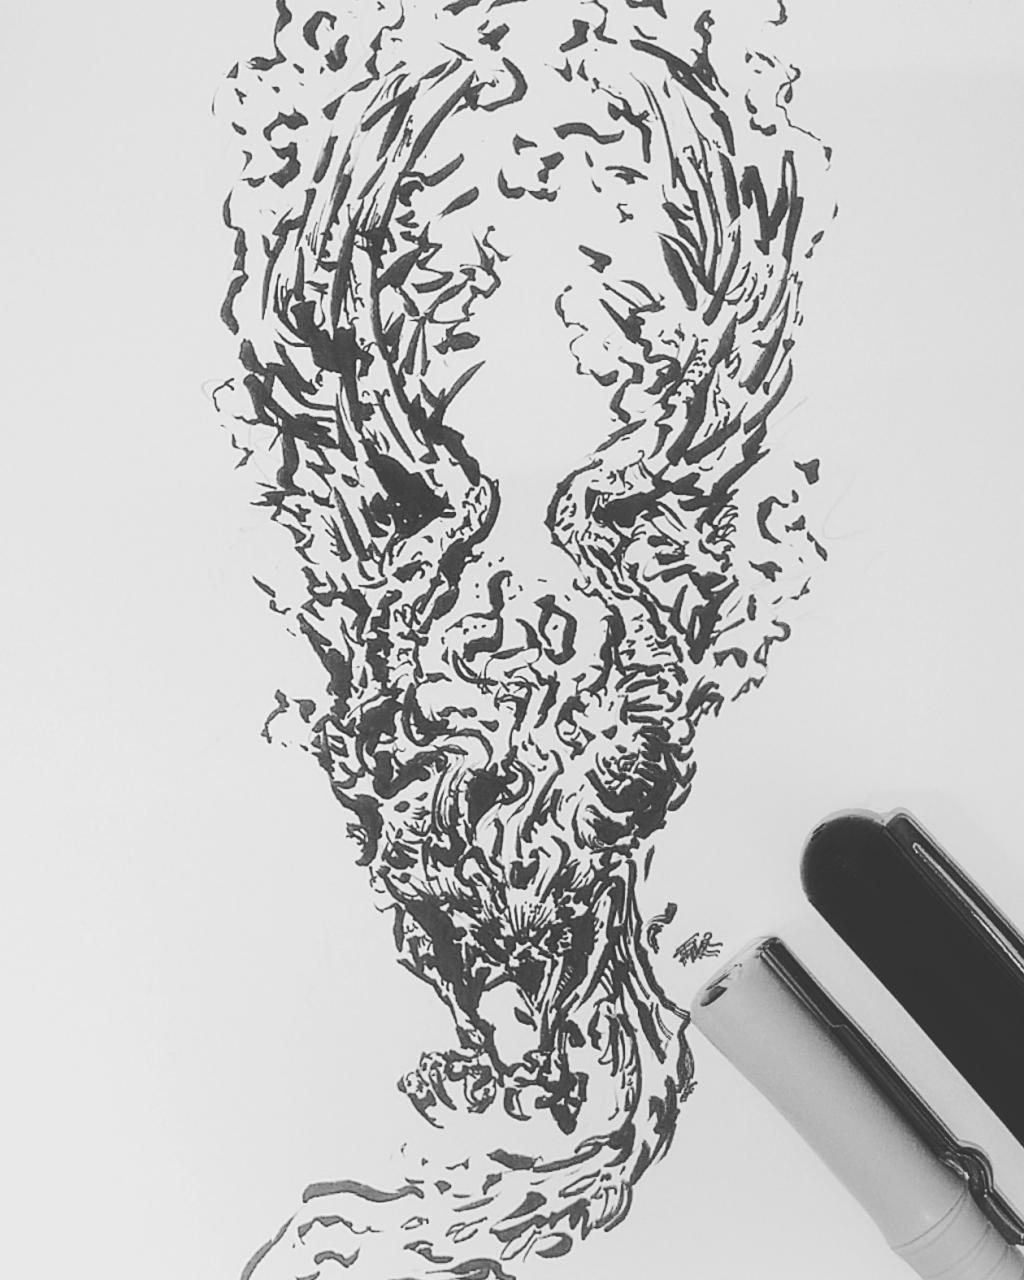 Finished a phoenix tattoo design on a whim , criticism very very welcome